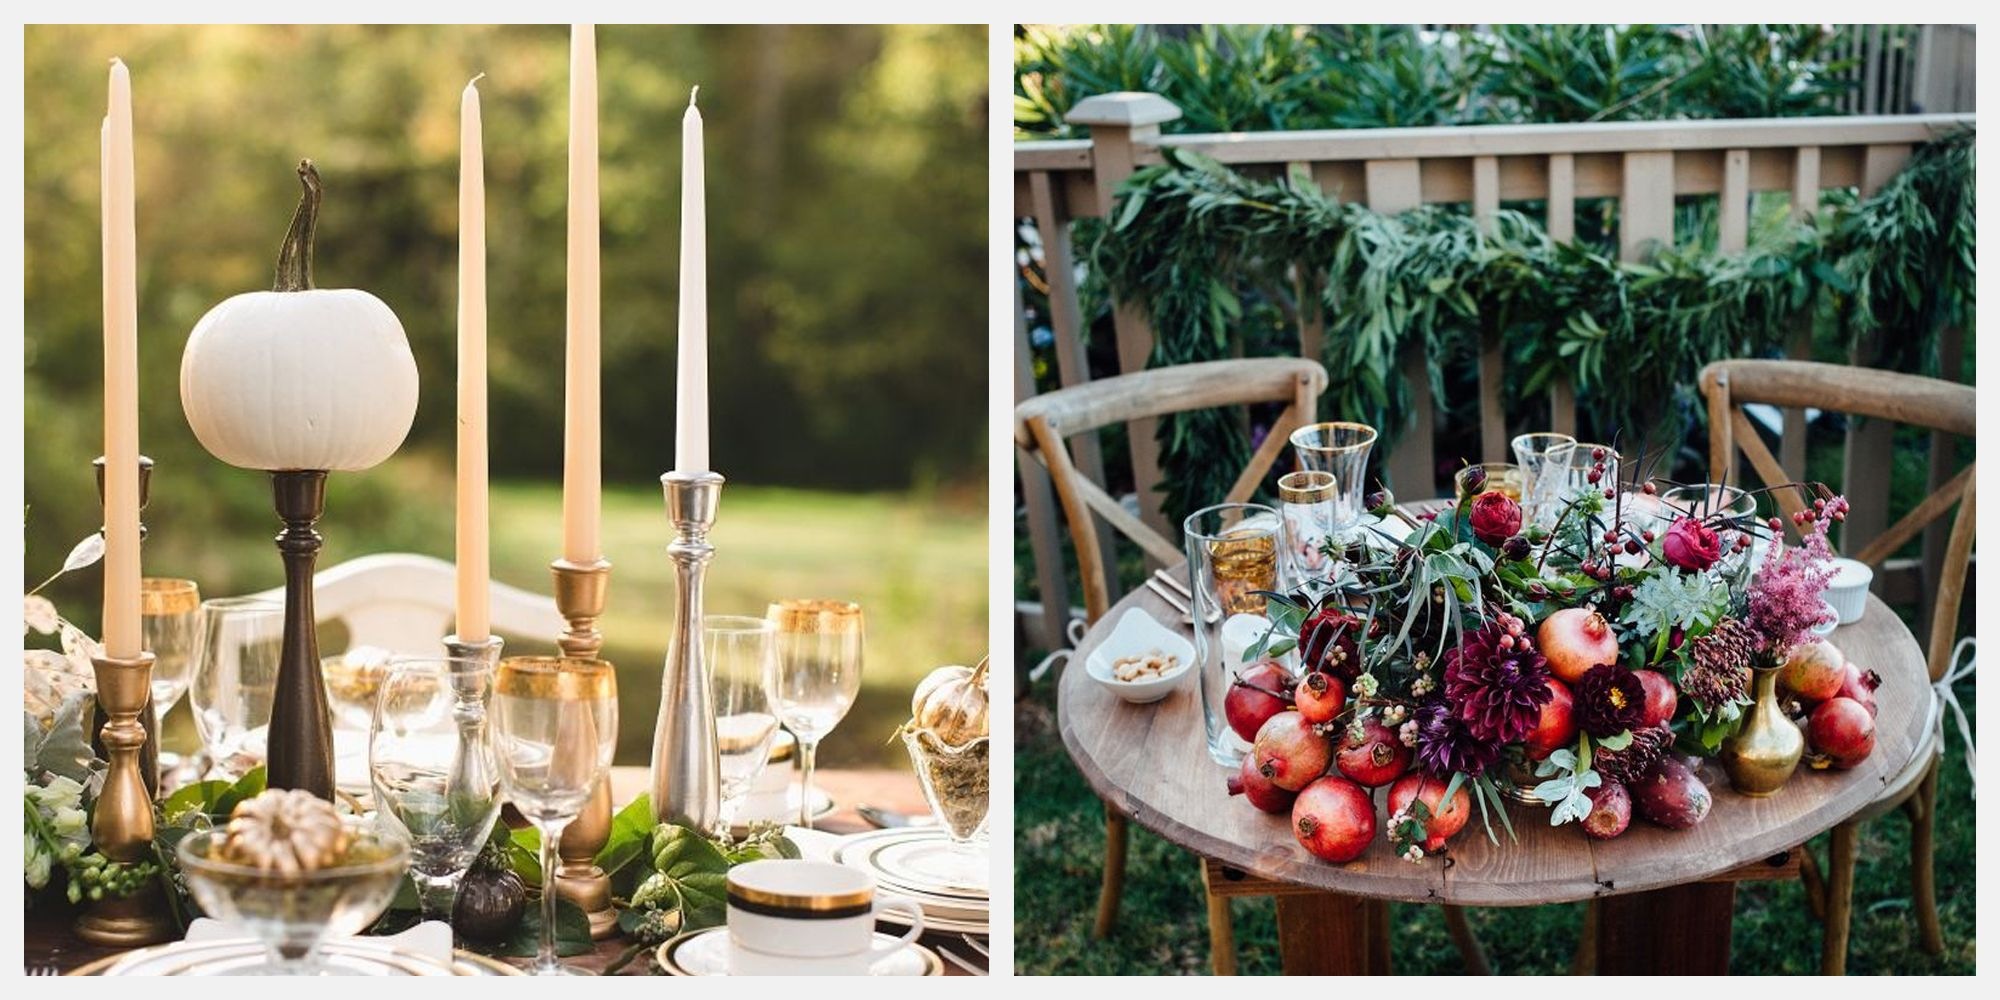 25+ Thanksgiving Centerpiece Ideas to Inspire a Chic Holiday Dinner